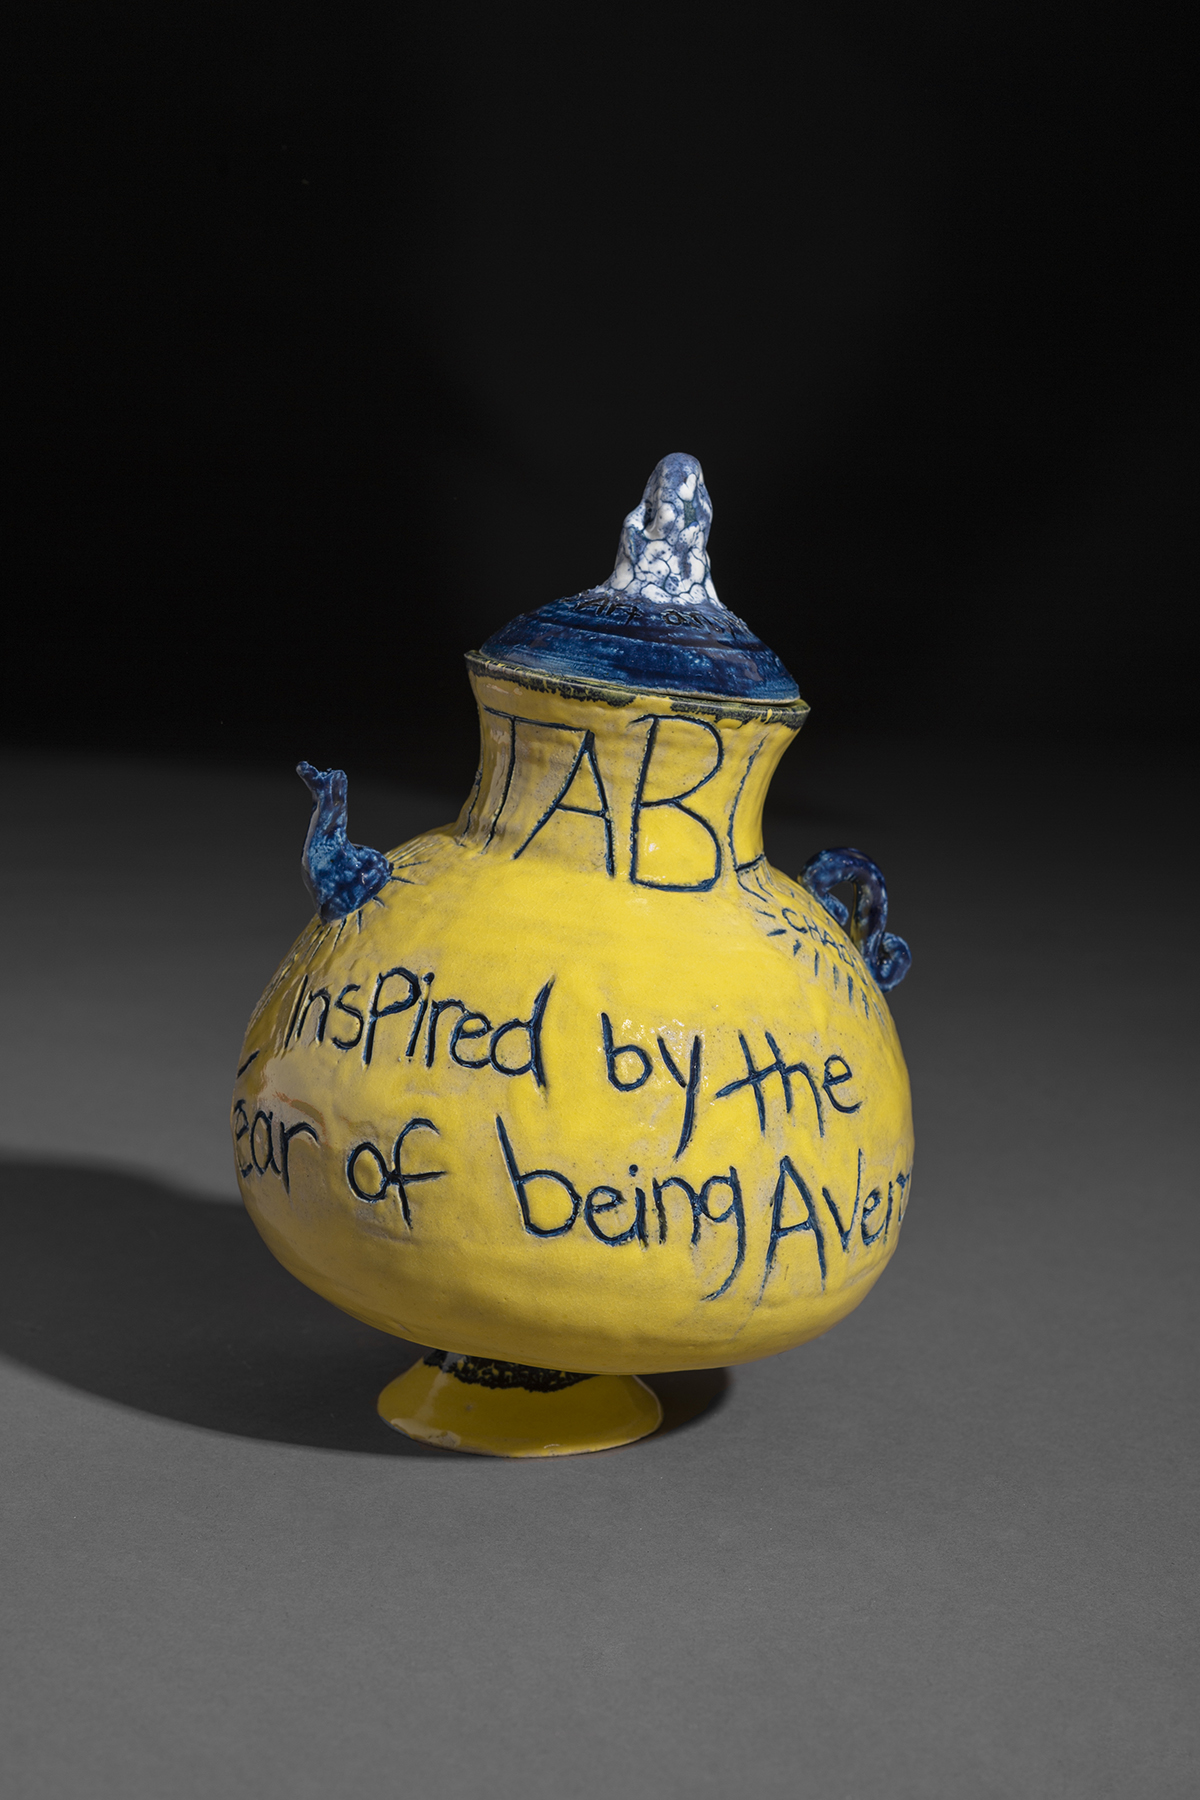 A yellow ceramic pot with blue writing on it.